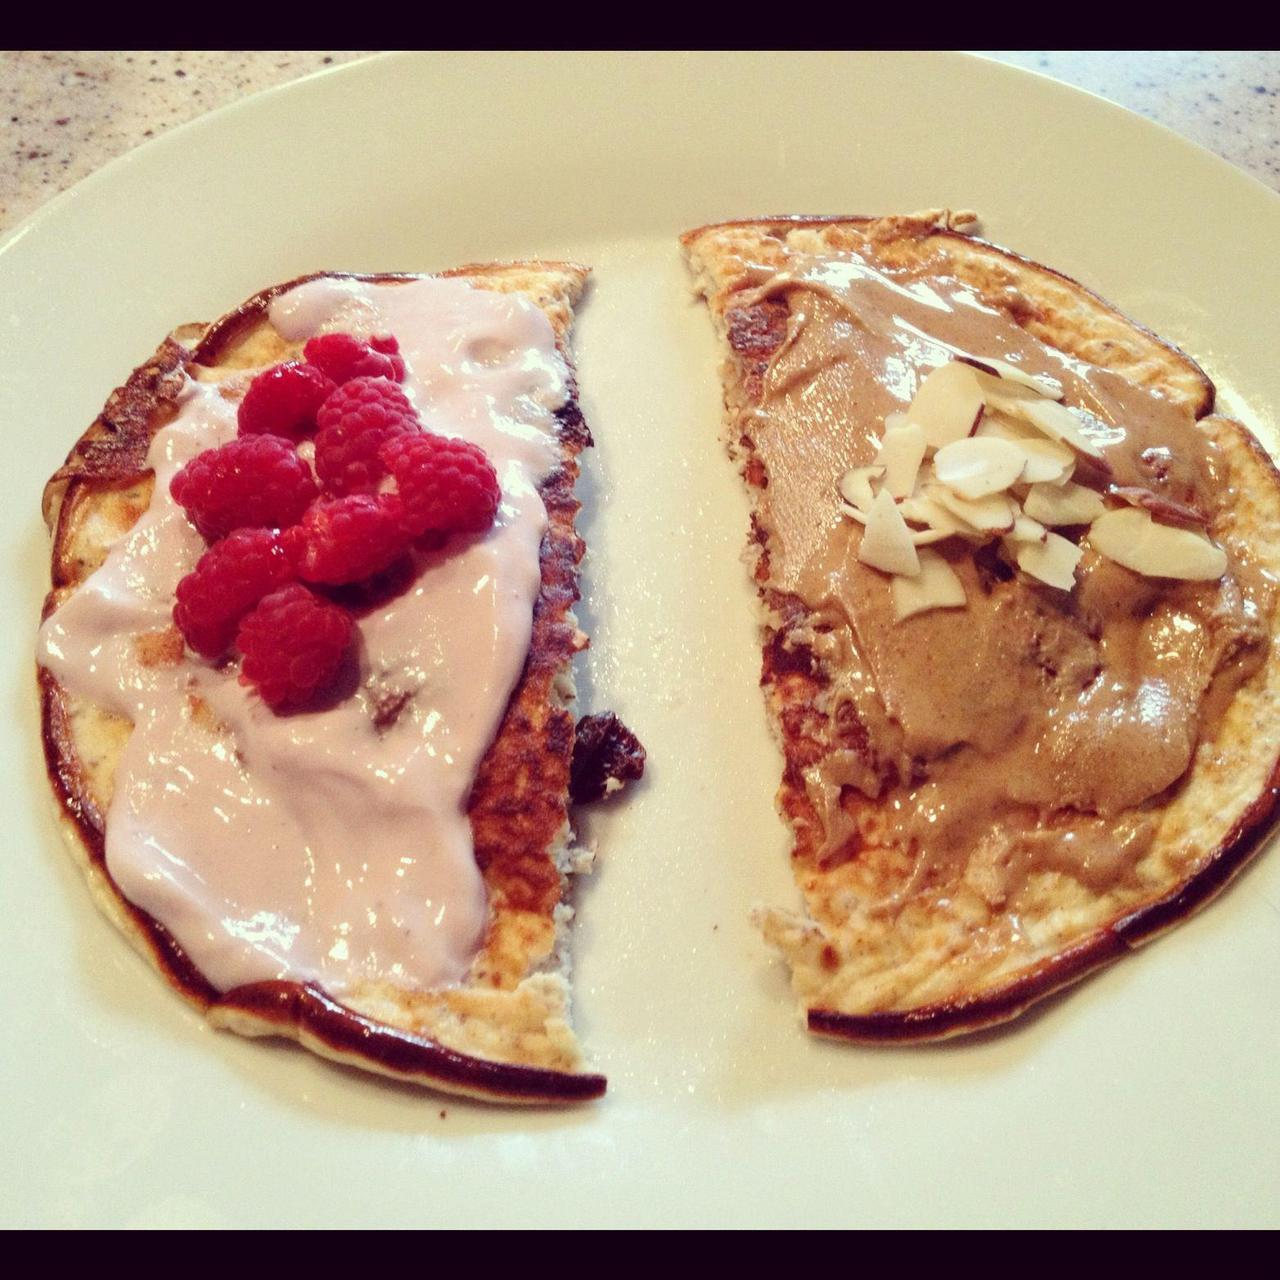 asliceofthefitlife:  Protein Pancake Brunch!!  These are as easy as cake! (PAN-cake!)  1/4 cup of oats 1/4 cup of fat free plain greek yogurt 1/2 scoop of vanilla protein powder (or any flavor you choose) 3 egg whites 1 tsp of almond extract (or vanilla) 1/2 tsp of cinnamon Whisk together all ingredients and pour in a nonstick skillet on medium heat. Once it bubbles on top flip over and cook for an additional 2-5 minutes. Serve with toppings of your choice — as you can tell I am indecisive on this so I go halfsies :) Greek yogurt and fresh fruit and/or nut butter and sliced almonds! HAPPY and RESTFUL SUNDAY KIDS!